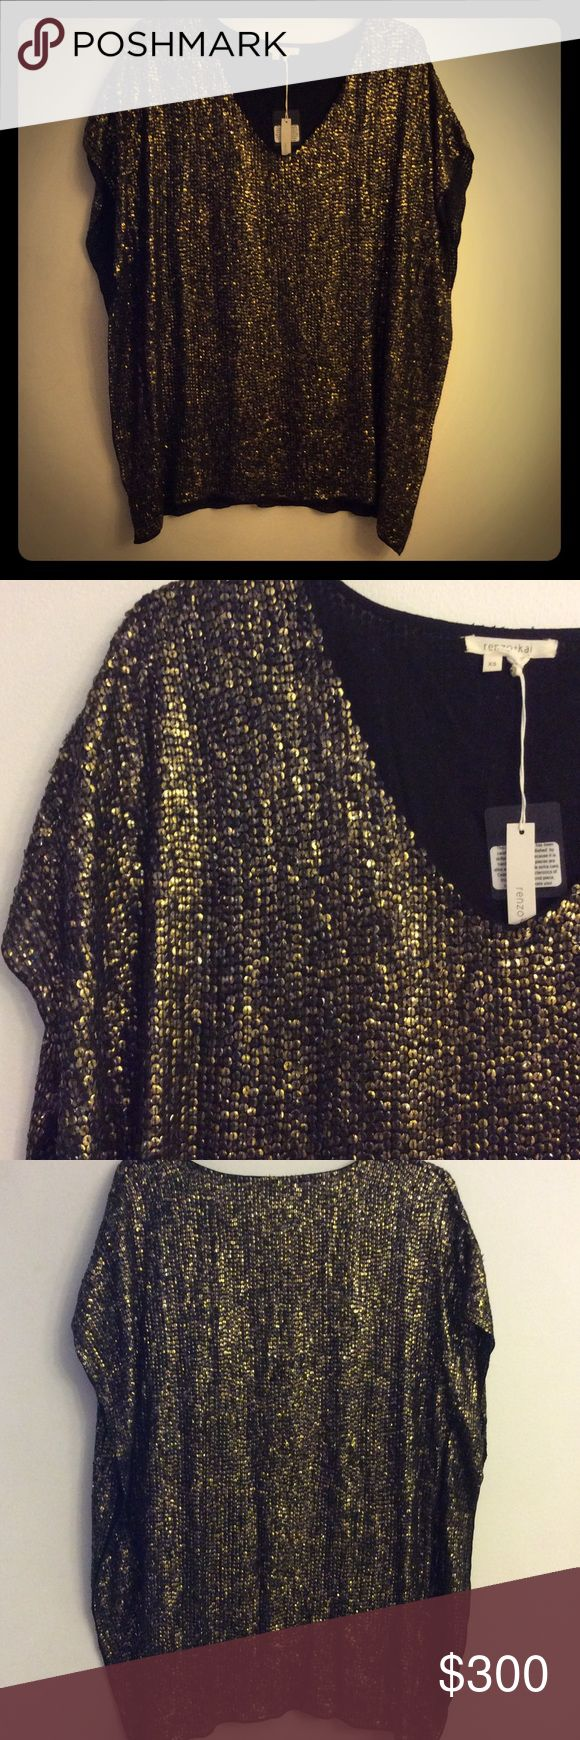 "Renzo+Kai Tunic Blouse/ Mini Dress Gold sparkle sequin batwing sleeve vneck tunic blouse. Tagged XS but runs big oversize and can fit M-L. Wear it as a long tunic shirt or mini dress. 30"" length. Renzo+kai Tops Tunics"